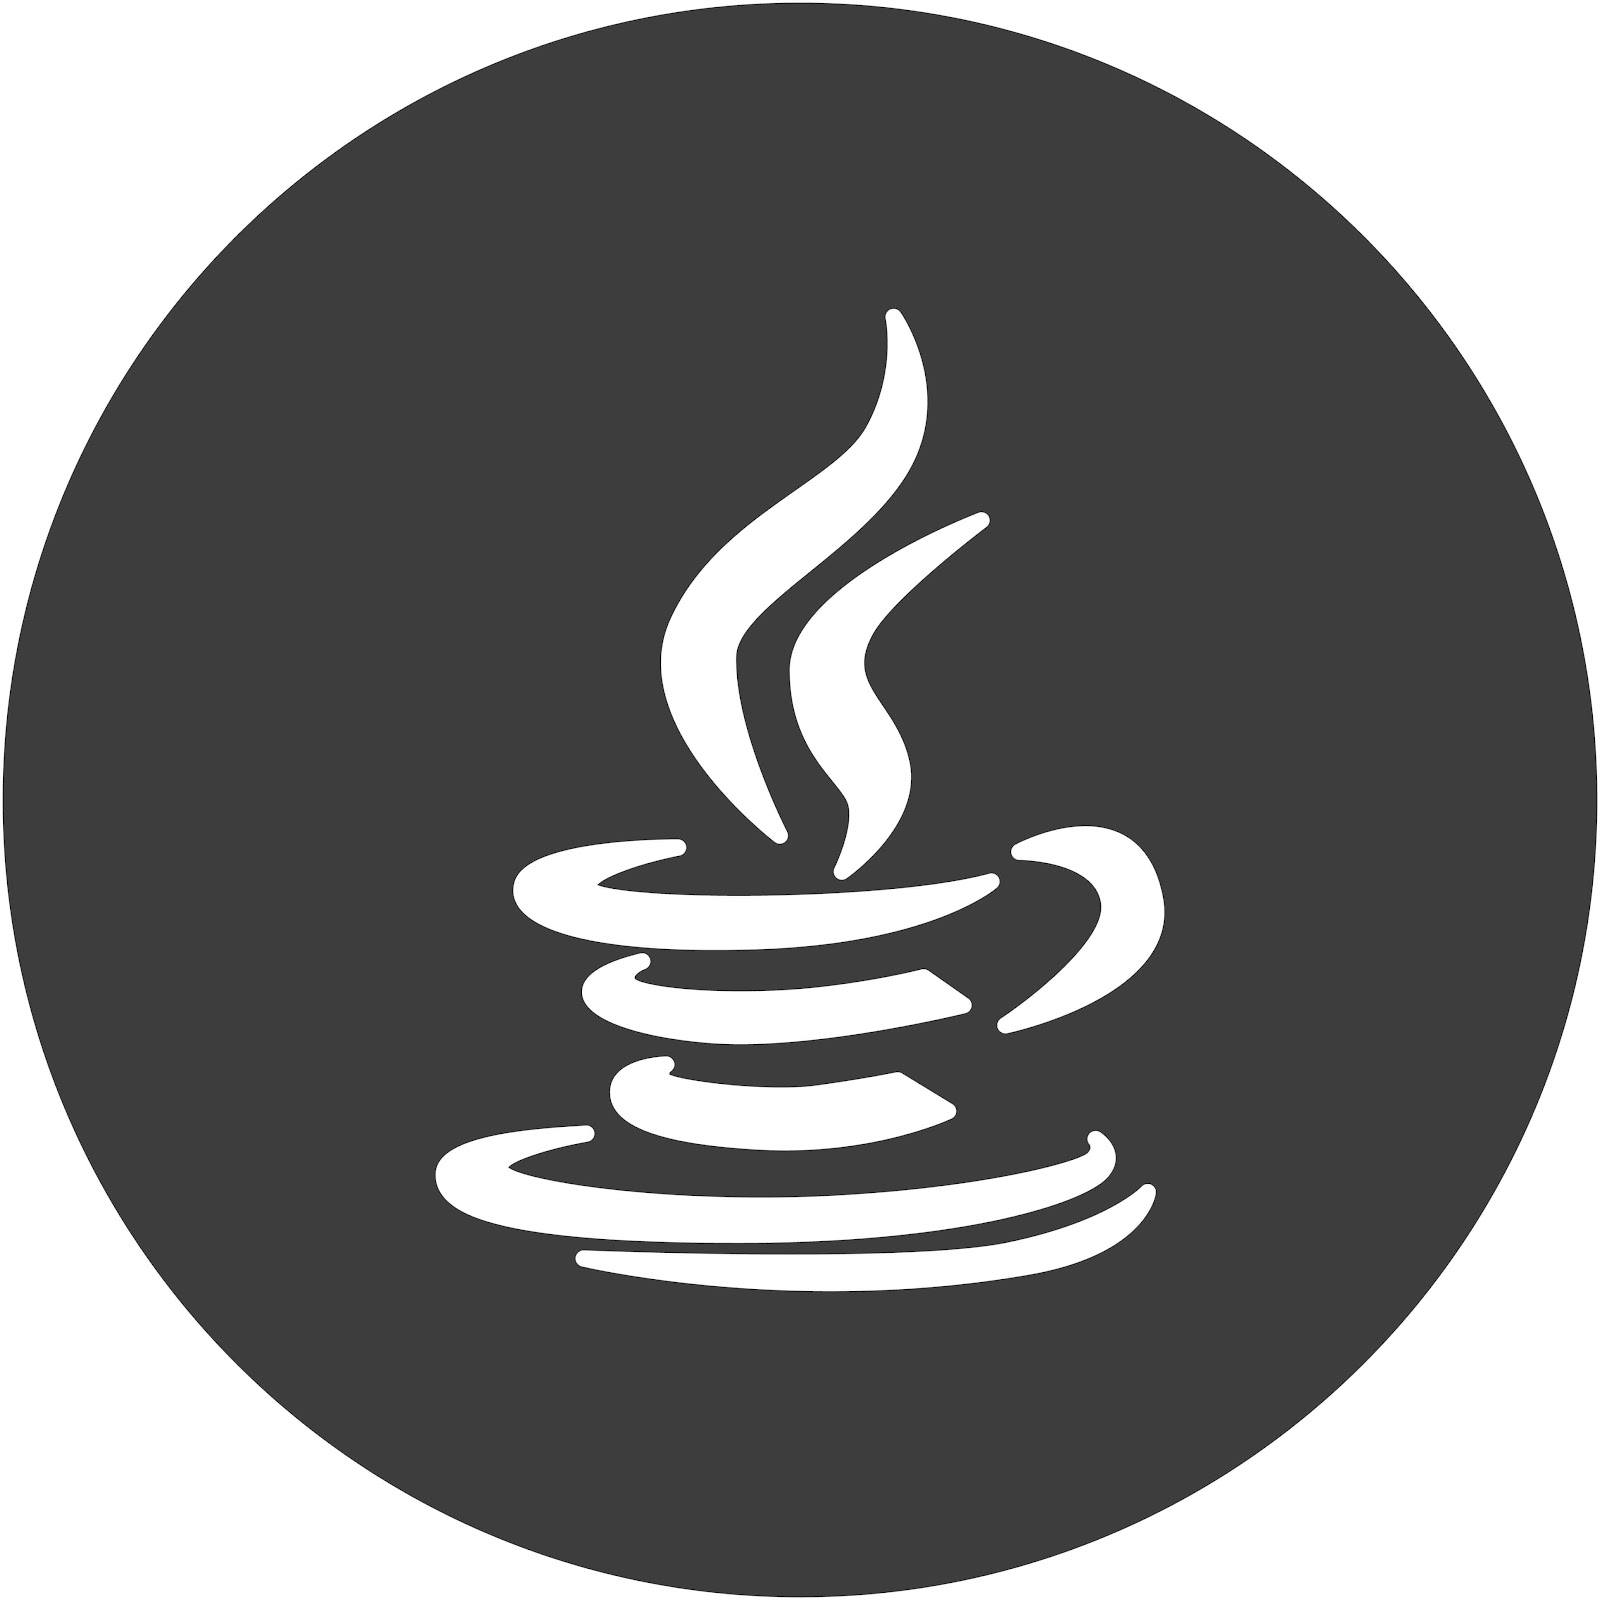 The Java coding language logo.